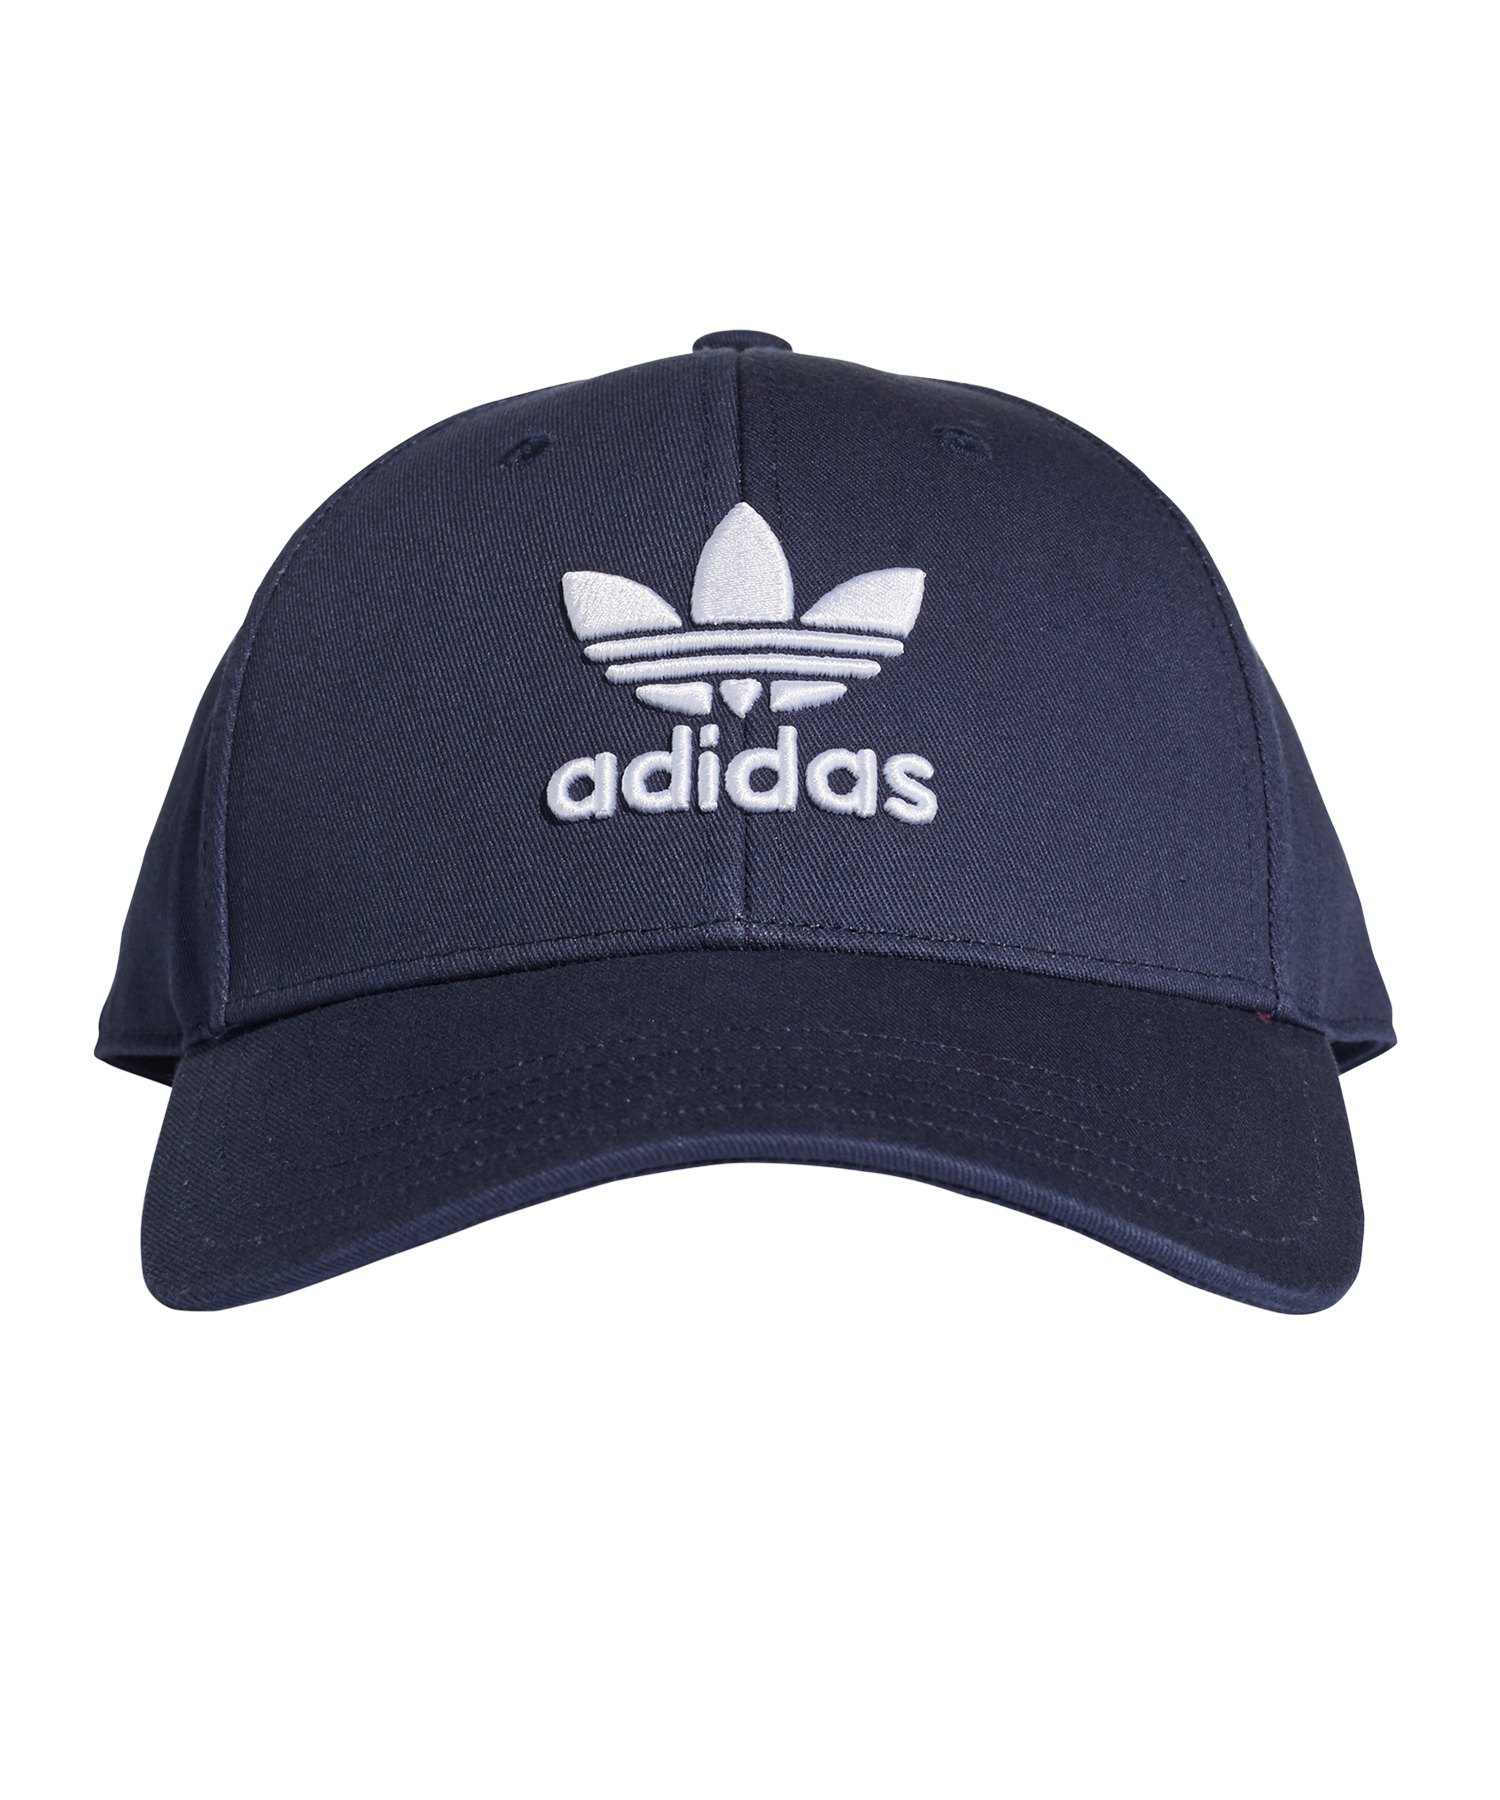 adidas Kinder Classic Equipment Kappe